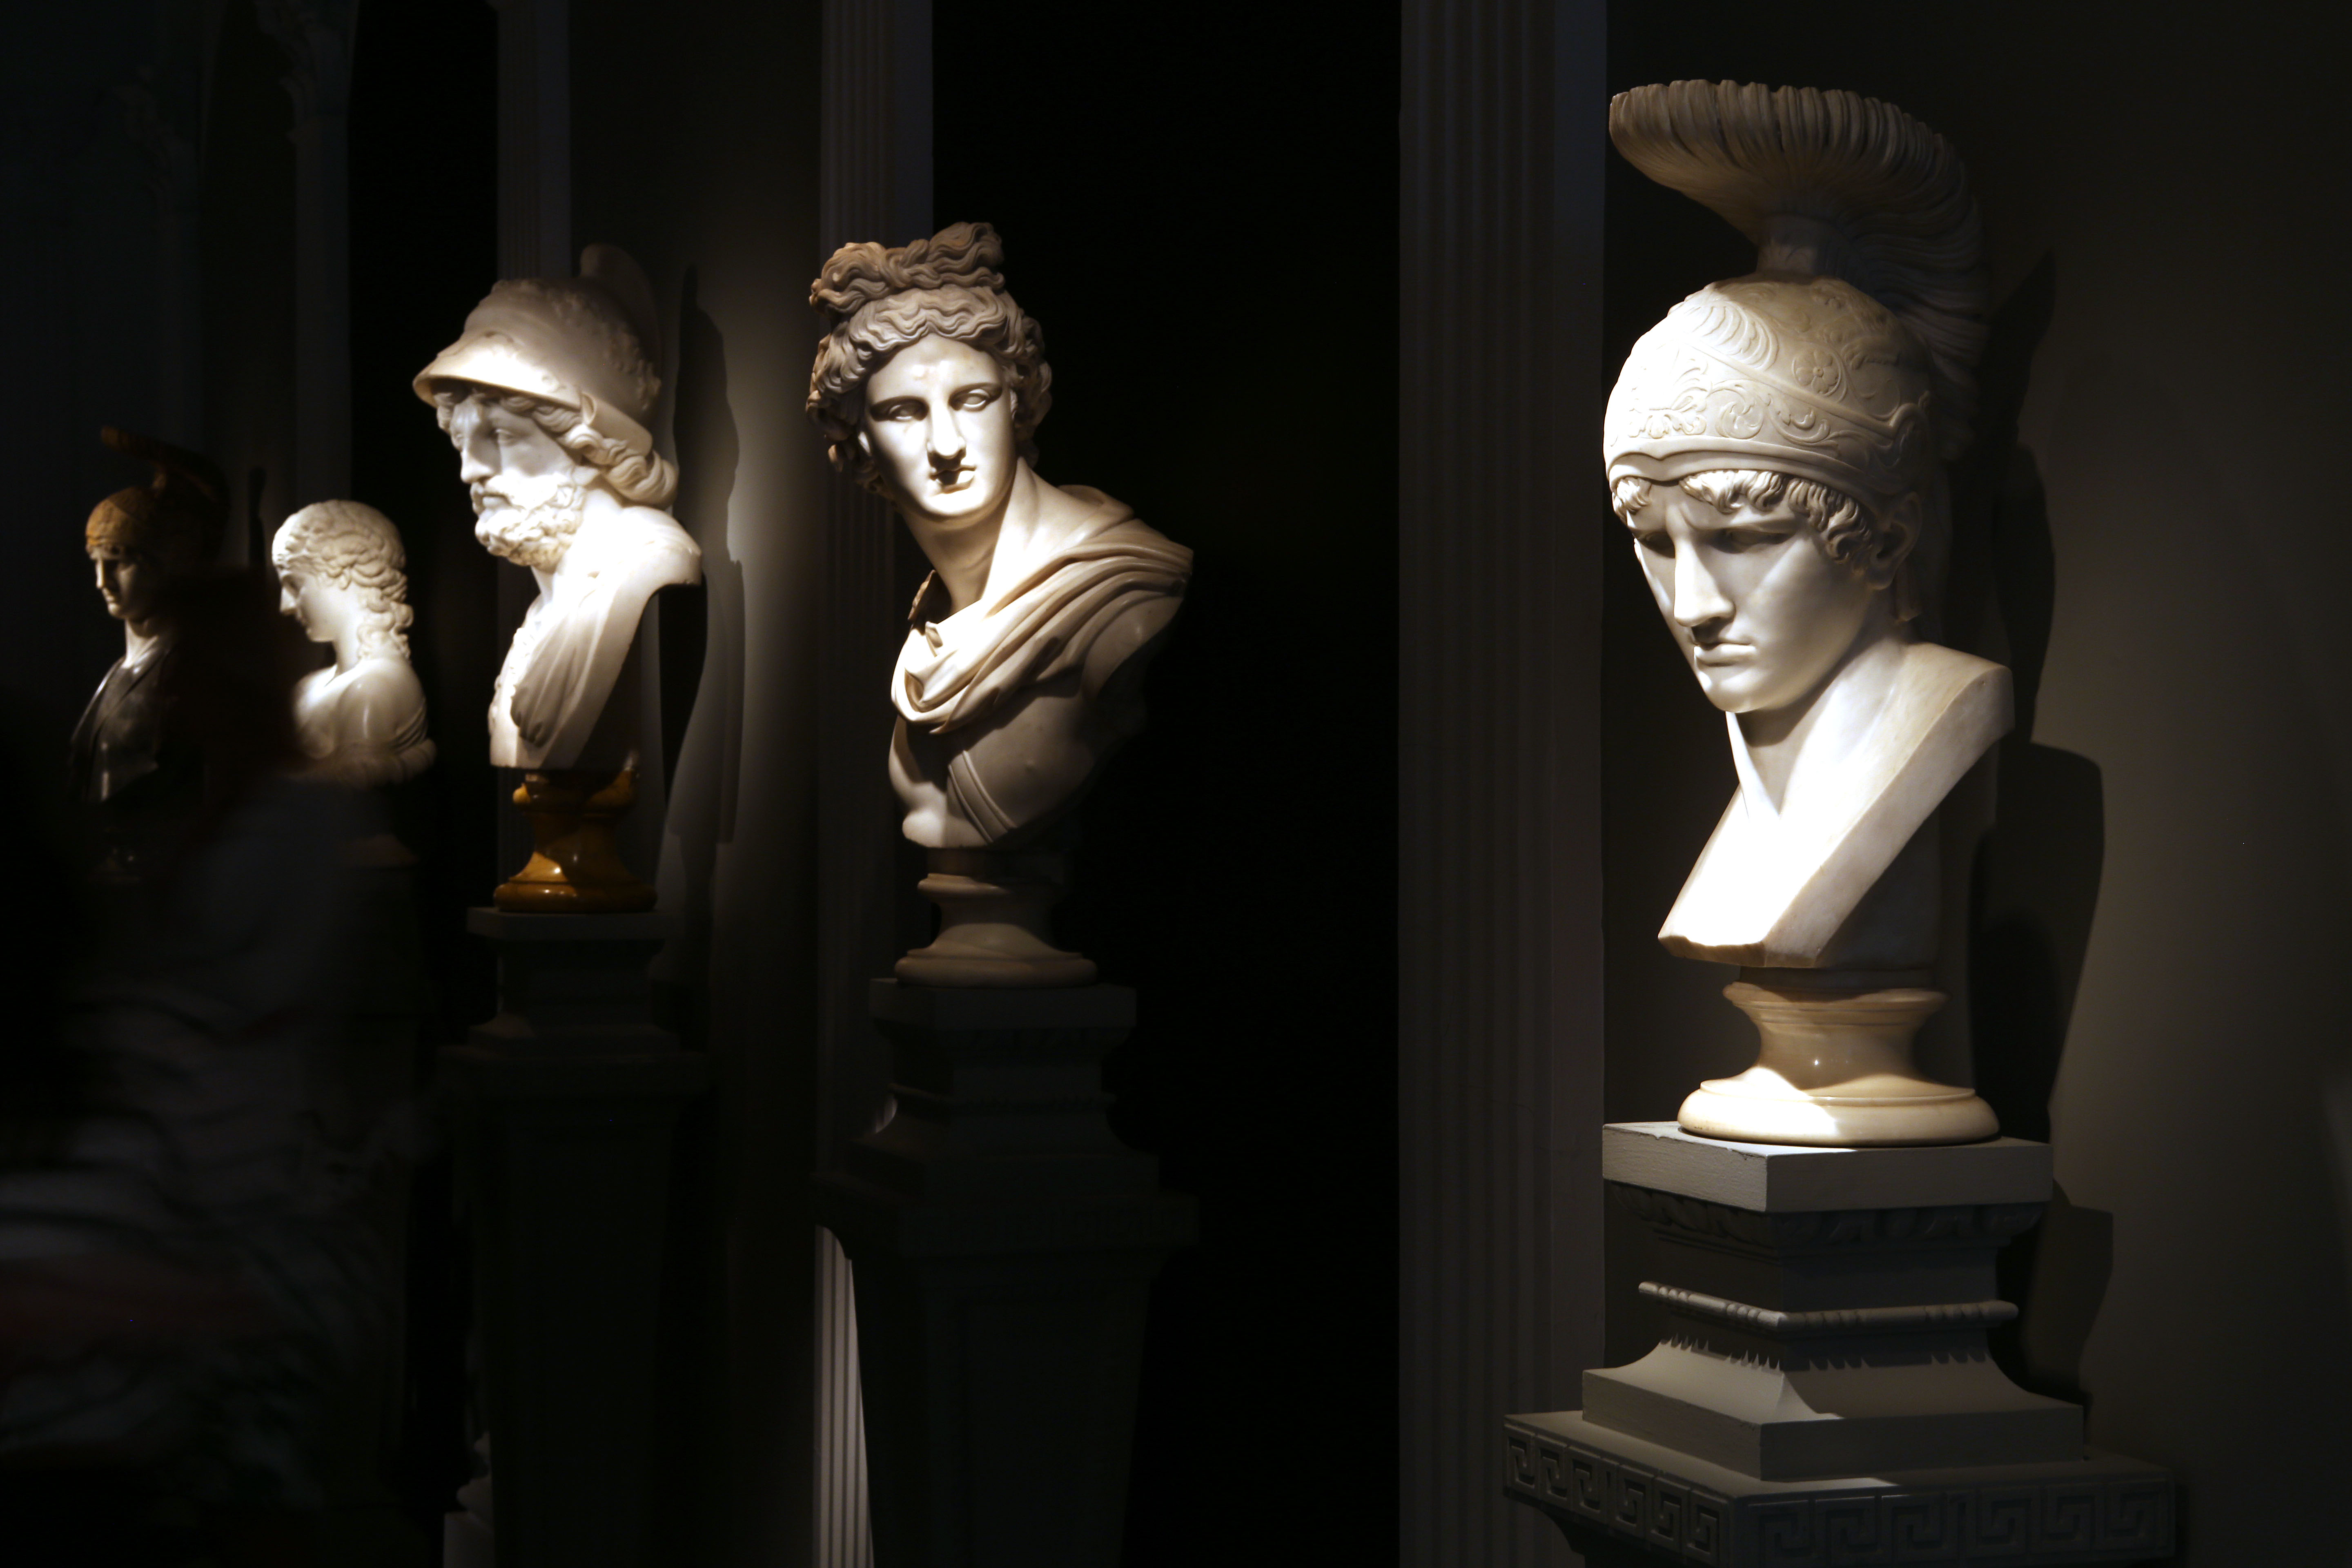 Marble busts.